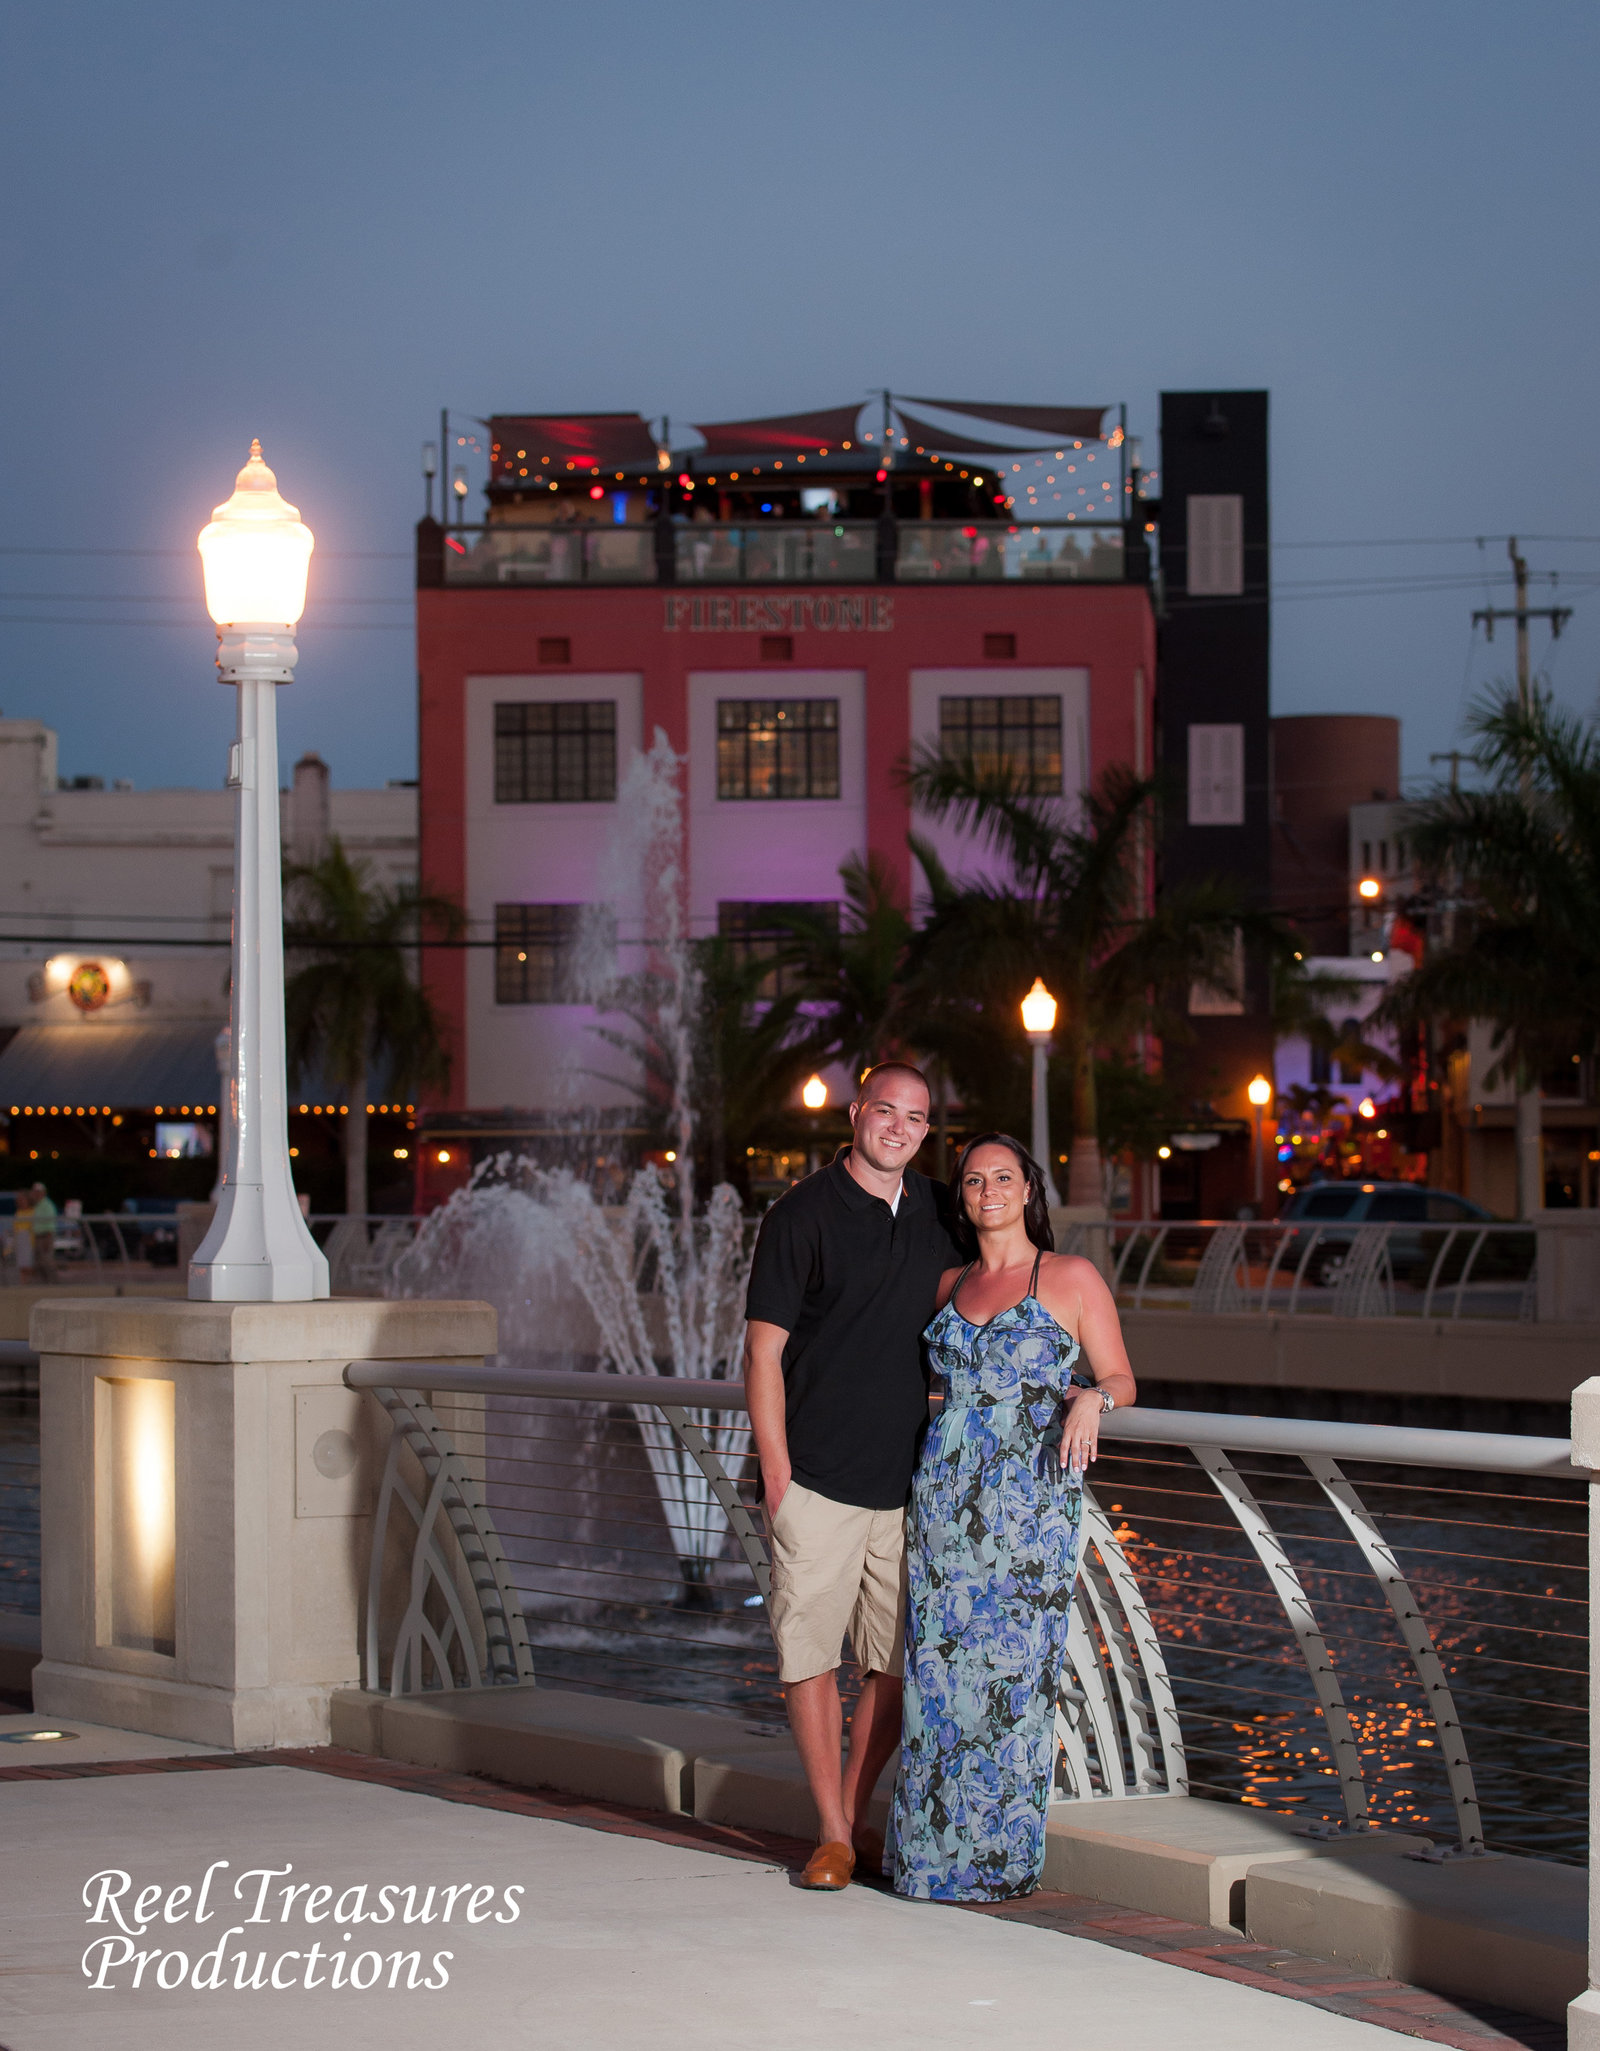 Reel Treasures Productions Engagement Shoot Fort Myers FL.